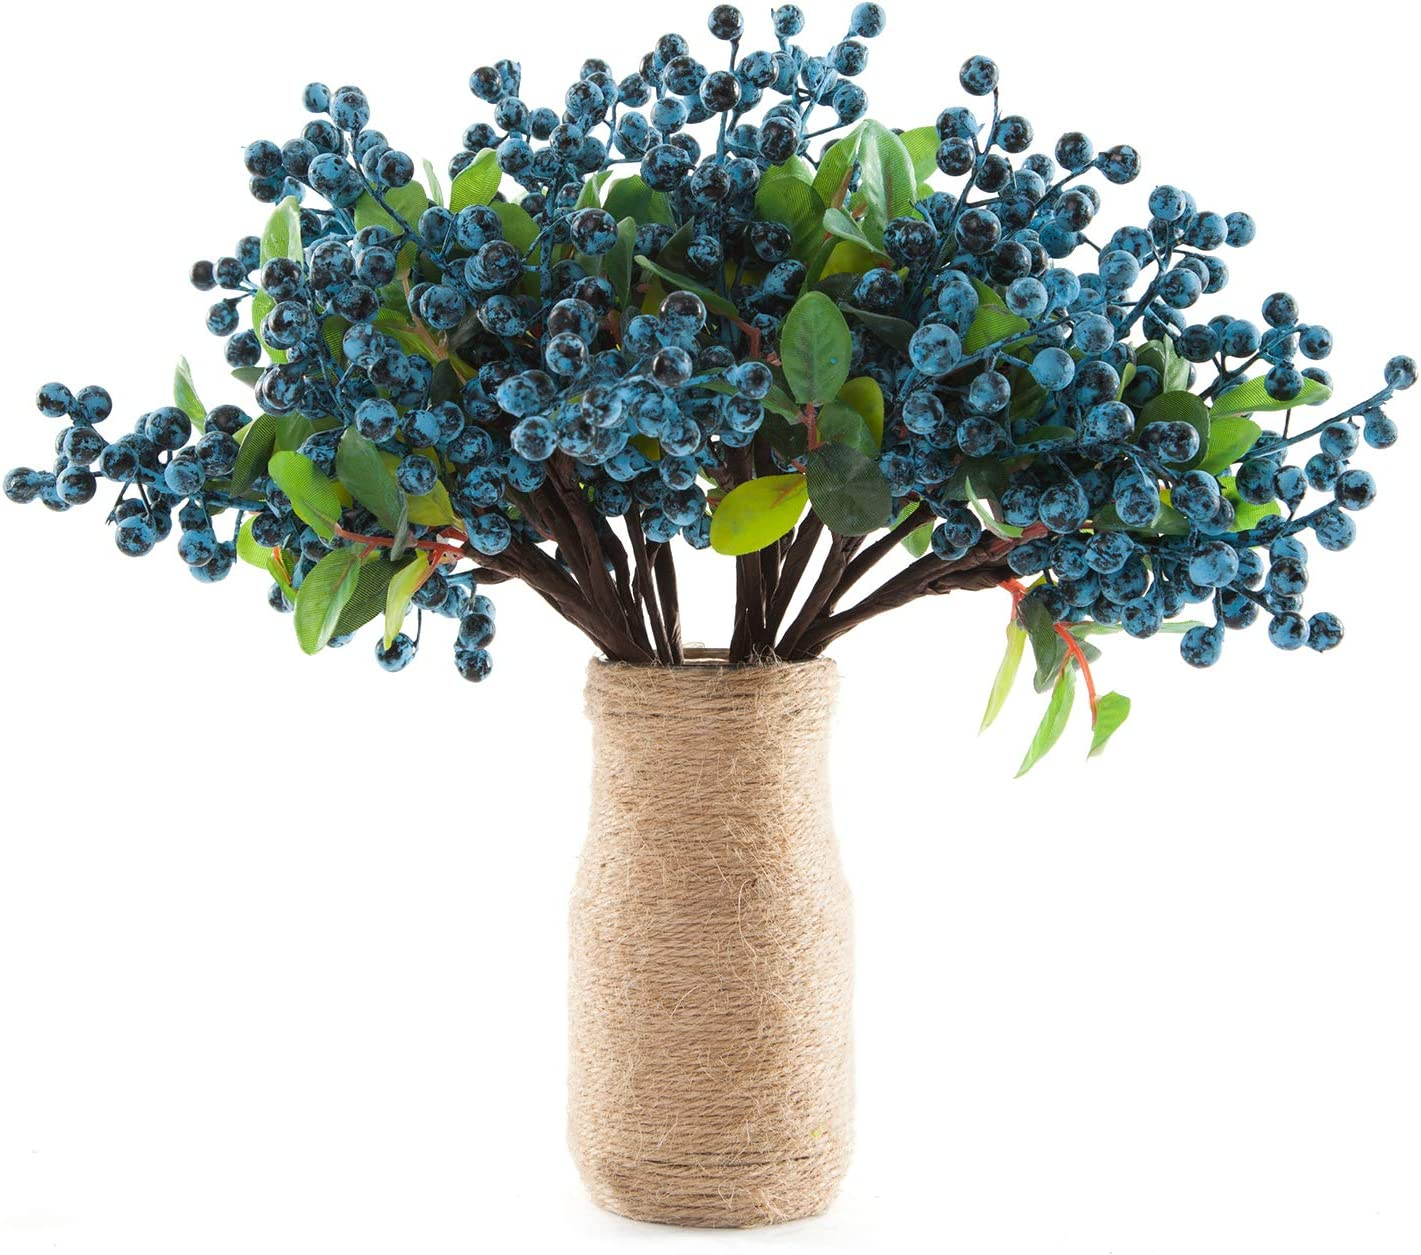 SHACOS Artificial Blue Berry Stems Pack of 20 Fake Blueberries Green Leaves Berry Spray Pick 9.8 inch Floral Crafts for Home Wedding Party Decor (20 PCS, Berry Blue)